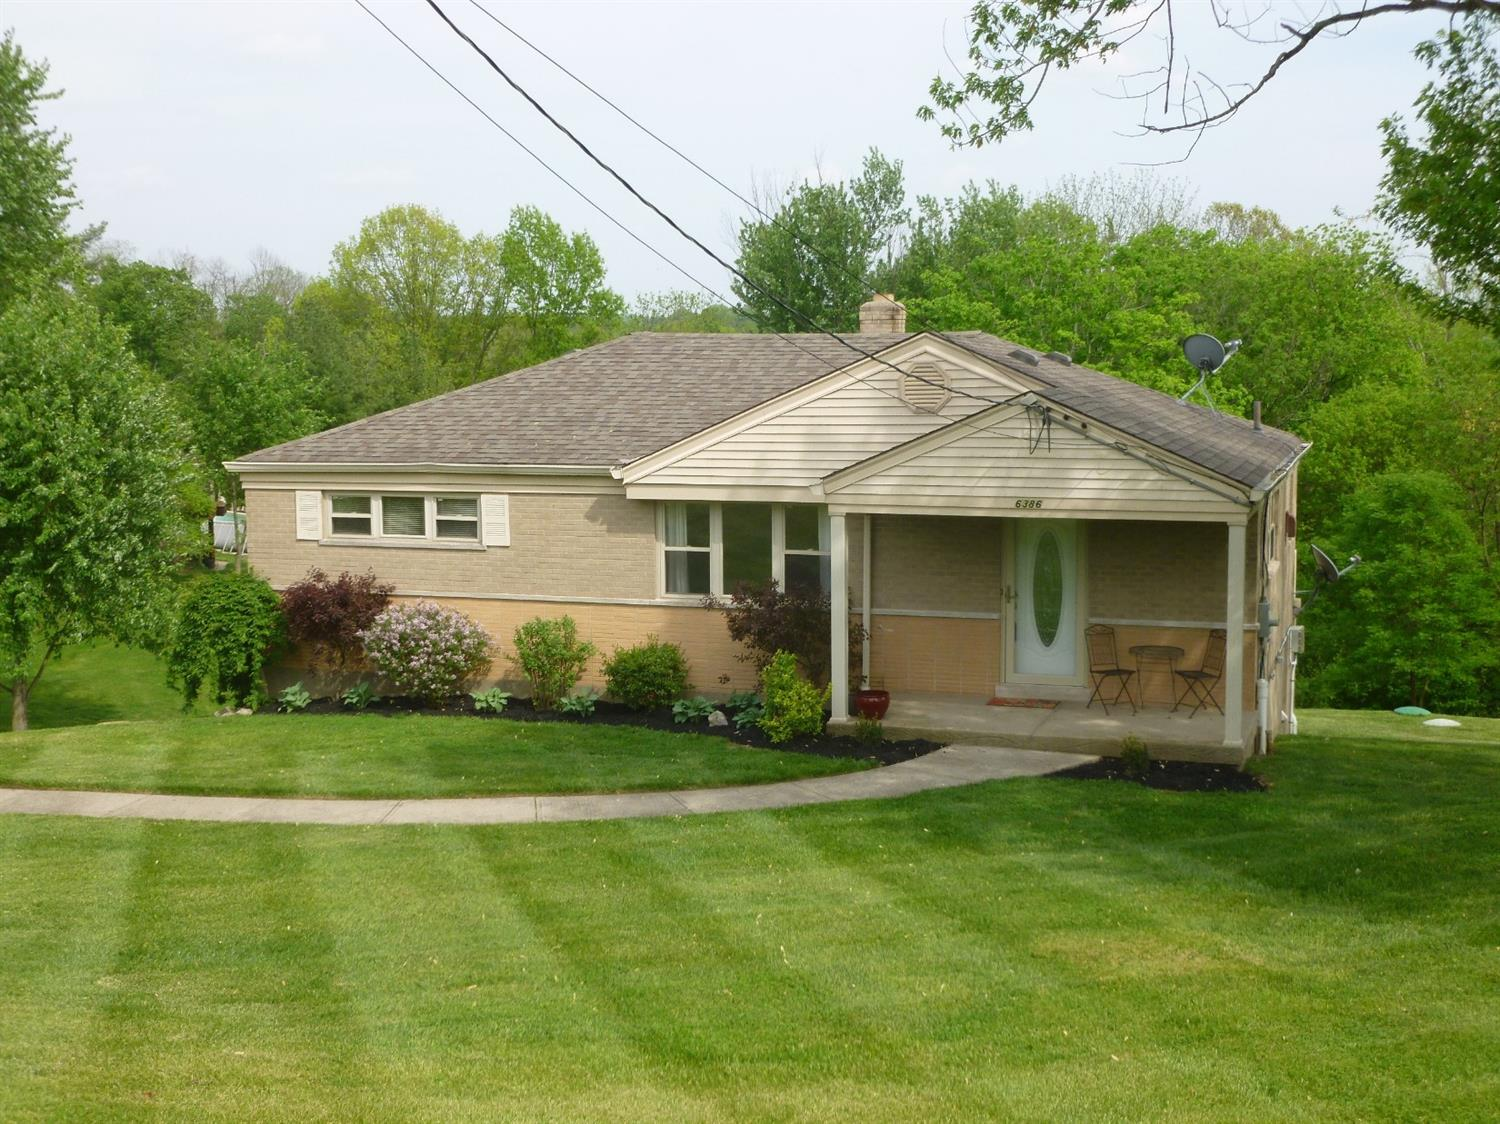 6386 Daleview Rd Colerain Twp.West, OH